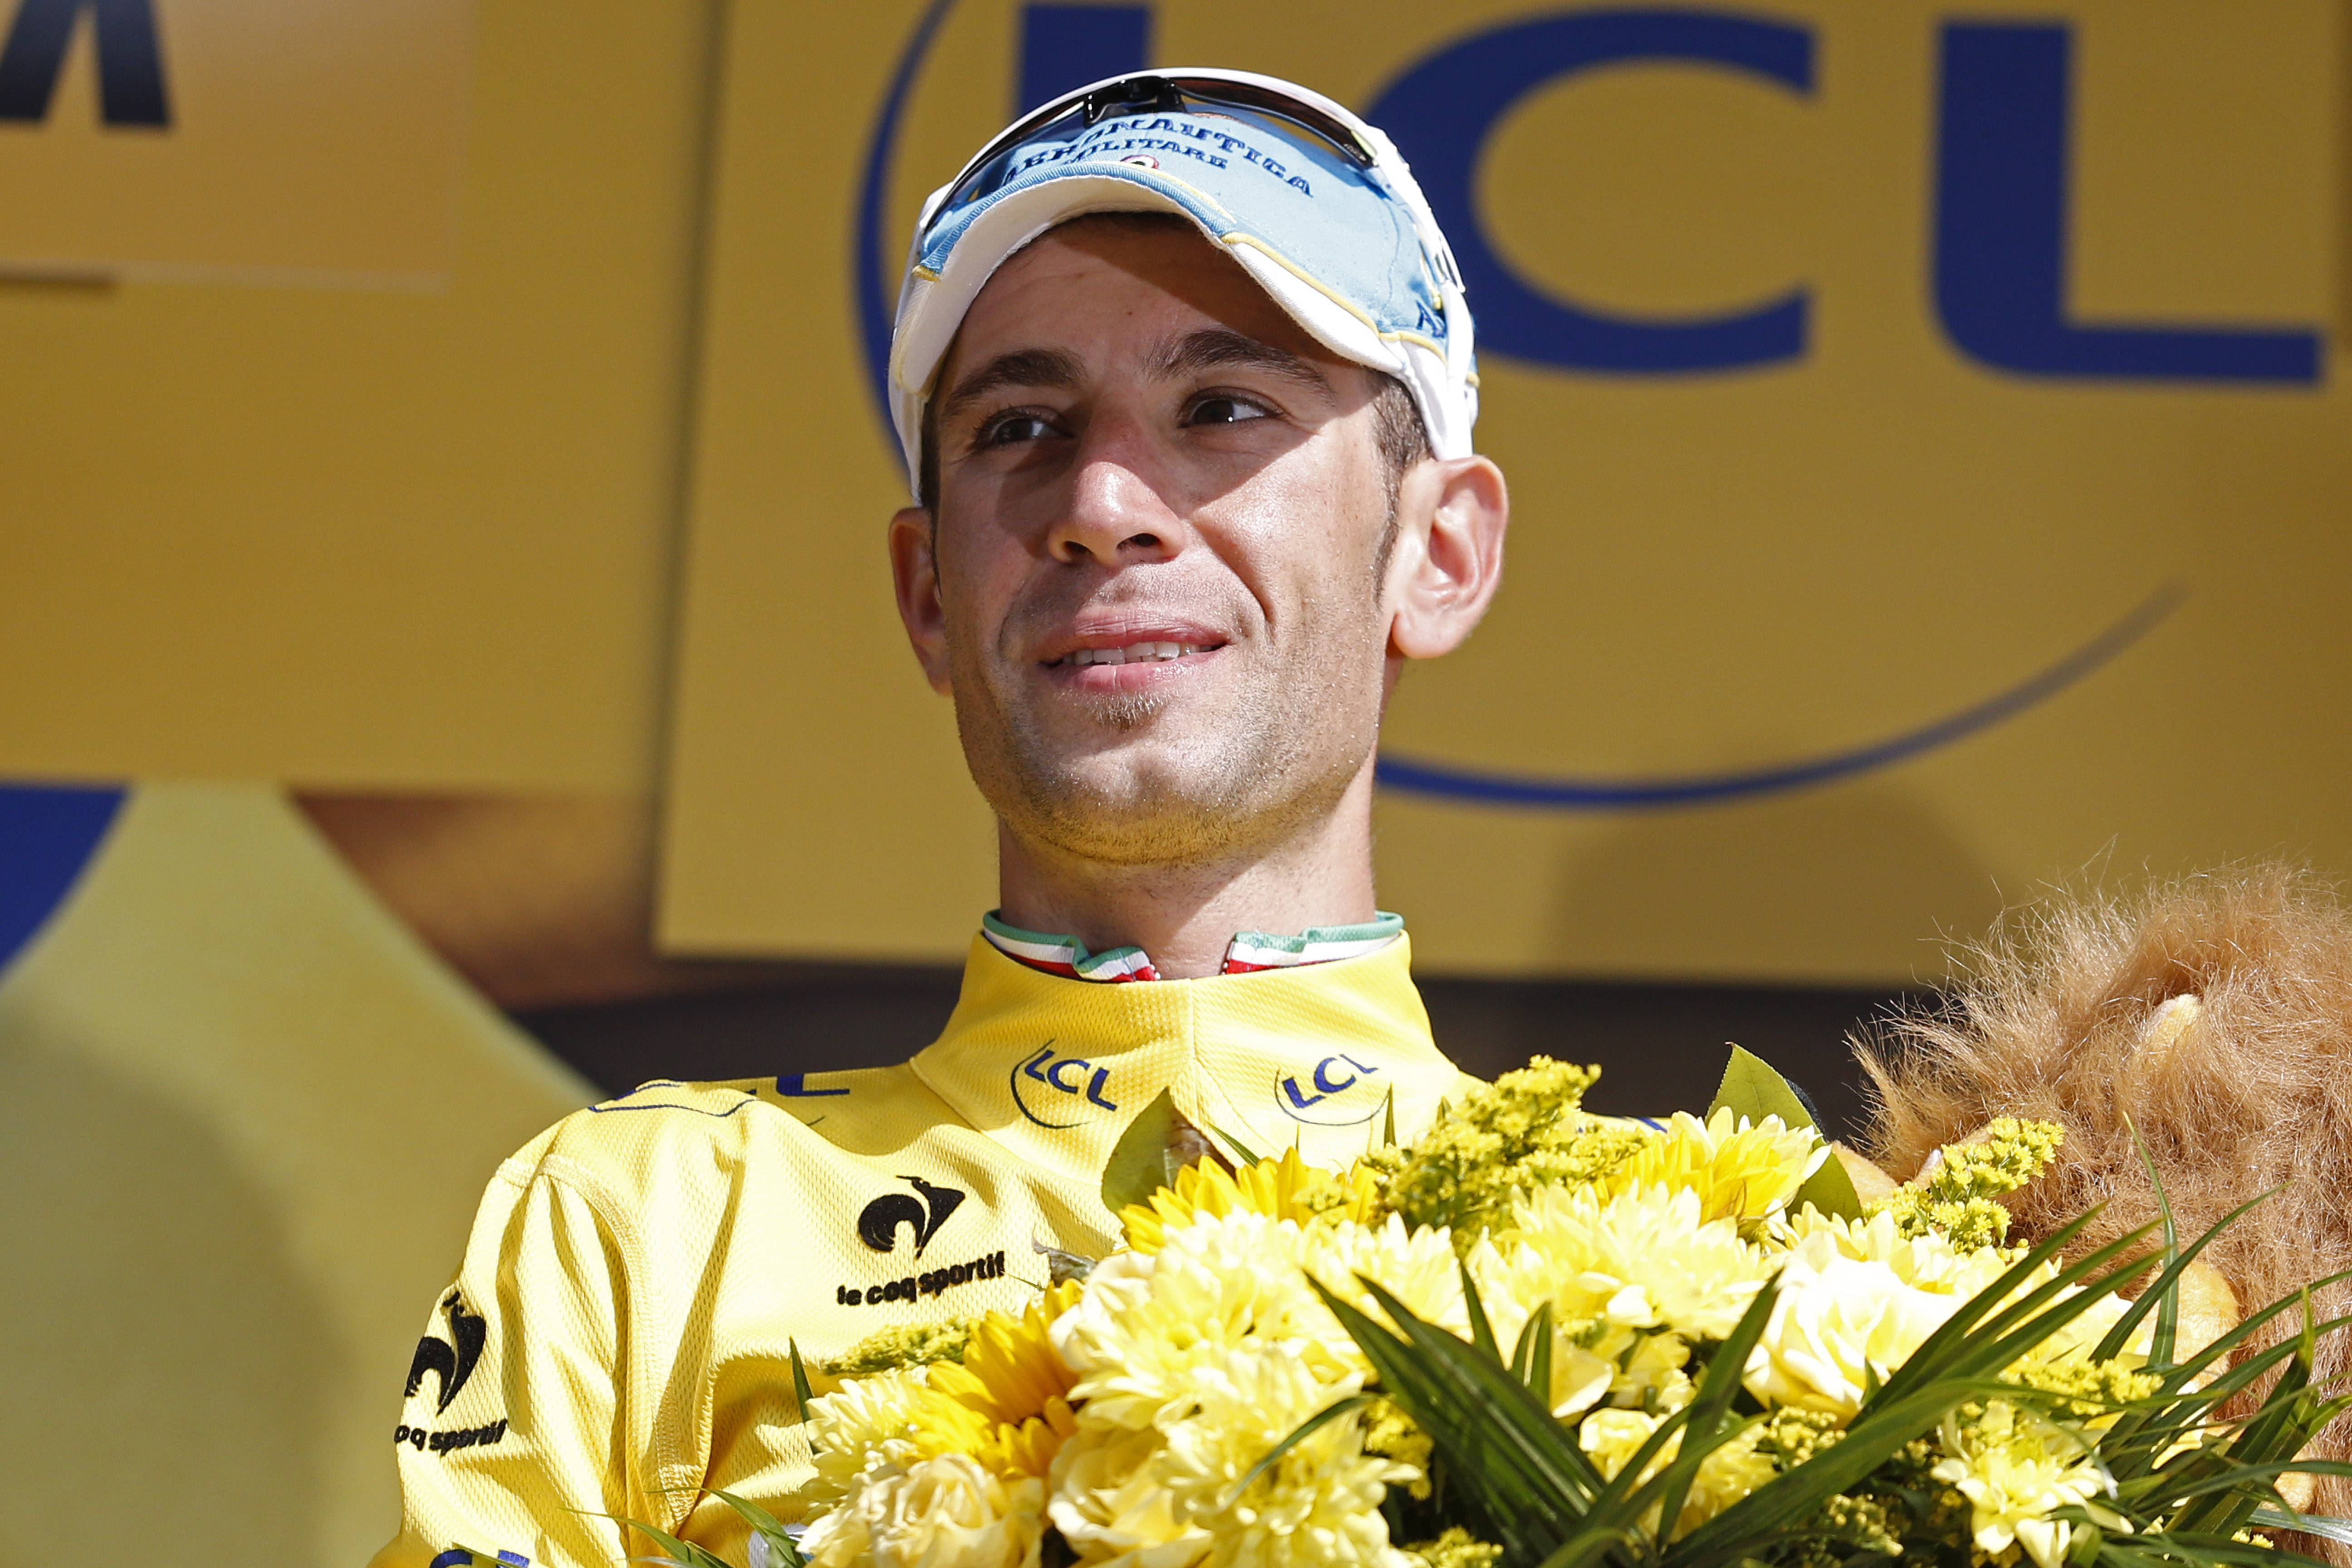 Italy's Vincenzo Nibali, wearing the overall leader's yellow jersey, celebrates on the podium of the twentieth stage of the Tour de France cycling race, an individual time-trial over 54 kilometers (33.6 miles) with start in Bergerac and finish in Perigueux, France, Saturday, July 26, 2014.